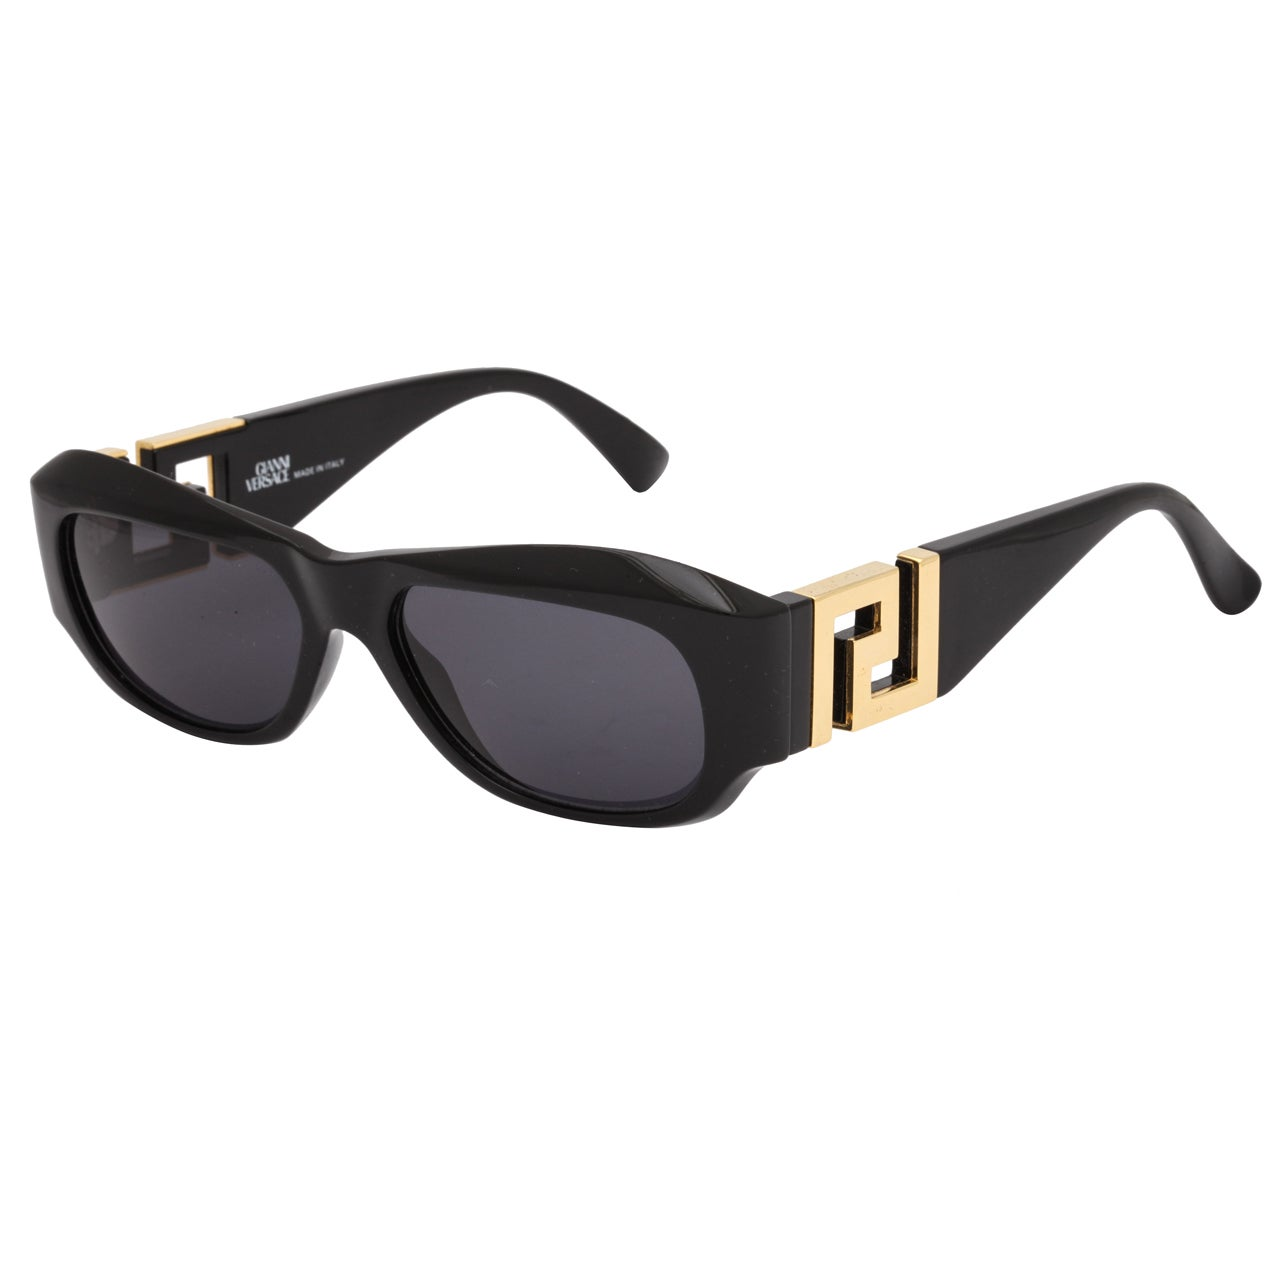 Greek Home Interiors Gianni Versace Sunglasses Mod T75 Col 852 For Sale At 1stdibs